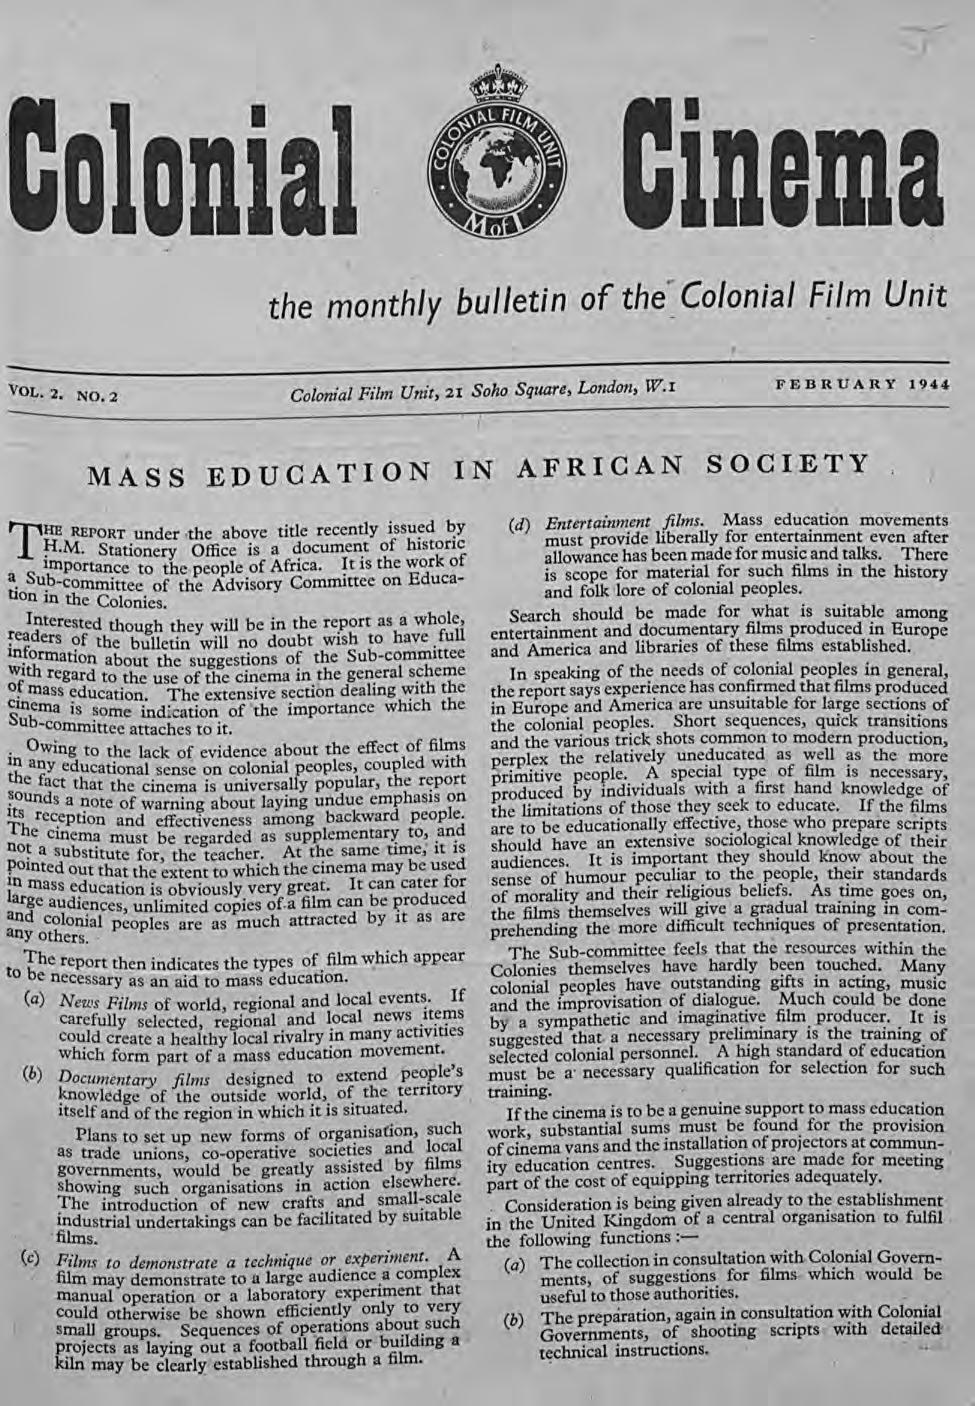 r IDema the monthly bulletin of the~ Colonial Film Unit VOL.2. NO.2 Colonial Film Unit,2I Soho Square, London, W.I FEBRUARY 1944 T : REPORT MASS EDUCATION IN AFRICAN SOCI,ETY.